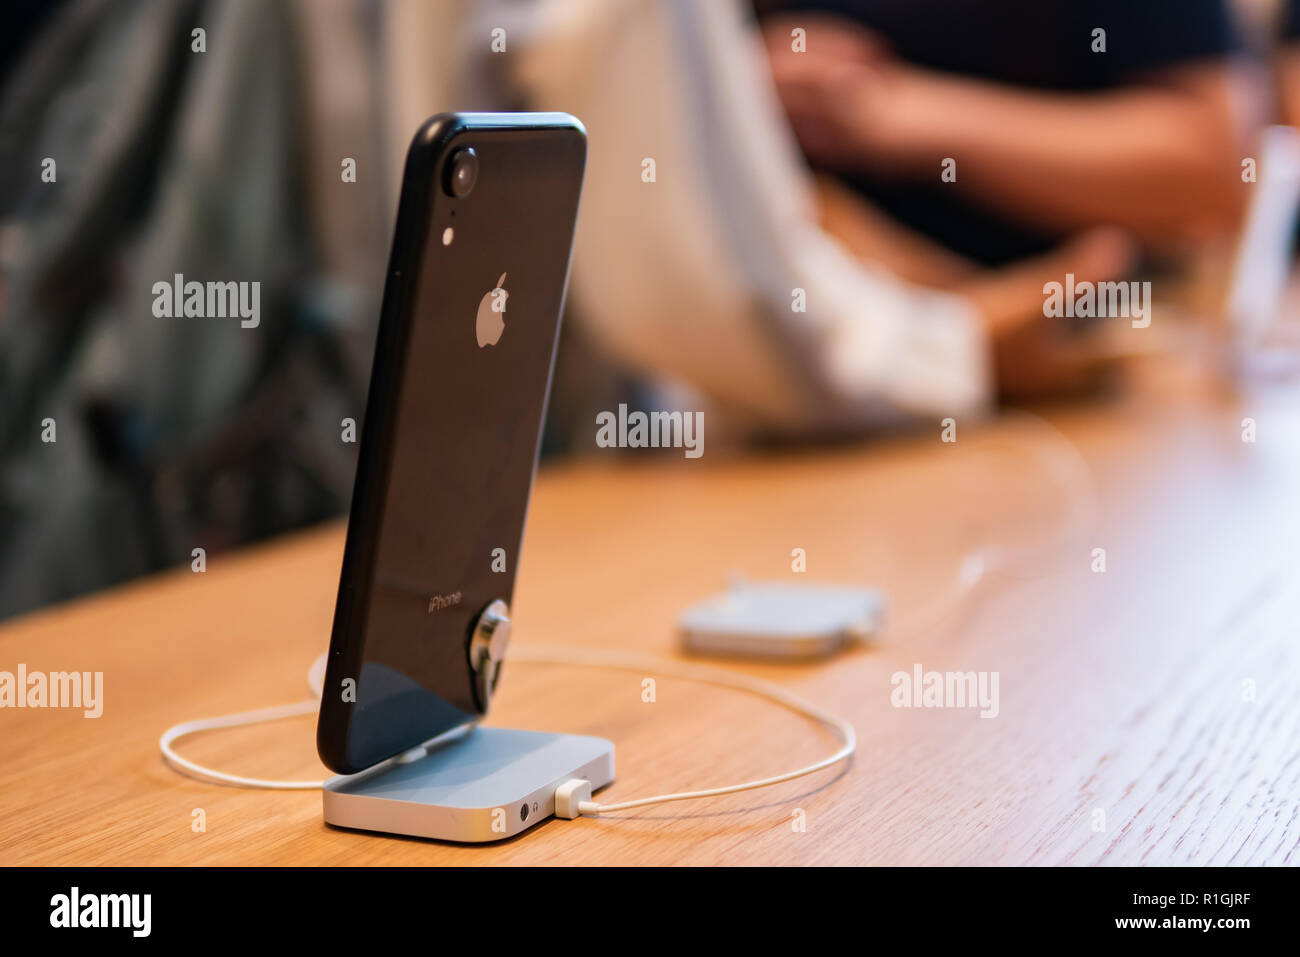 Bangkok, Thailand - November 10, 2018: The Apple iPhone XR mounted on the desk at the Apple store. - Stock Image